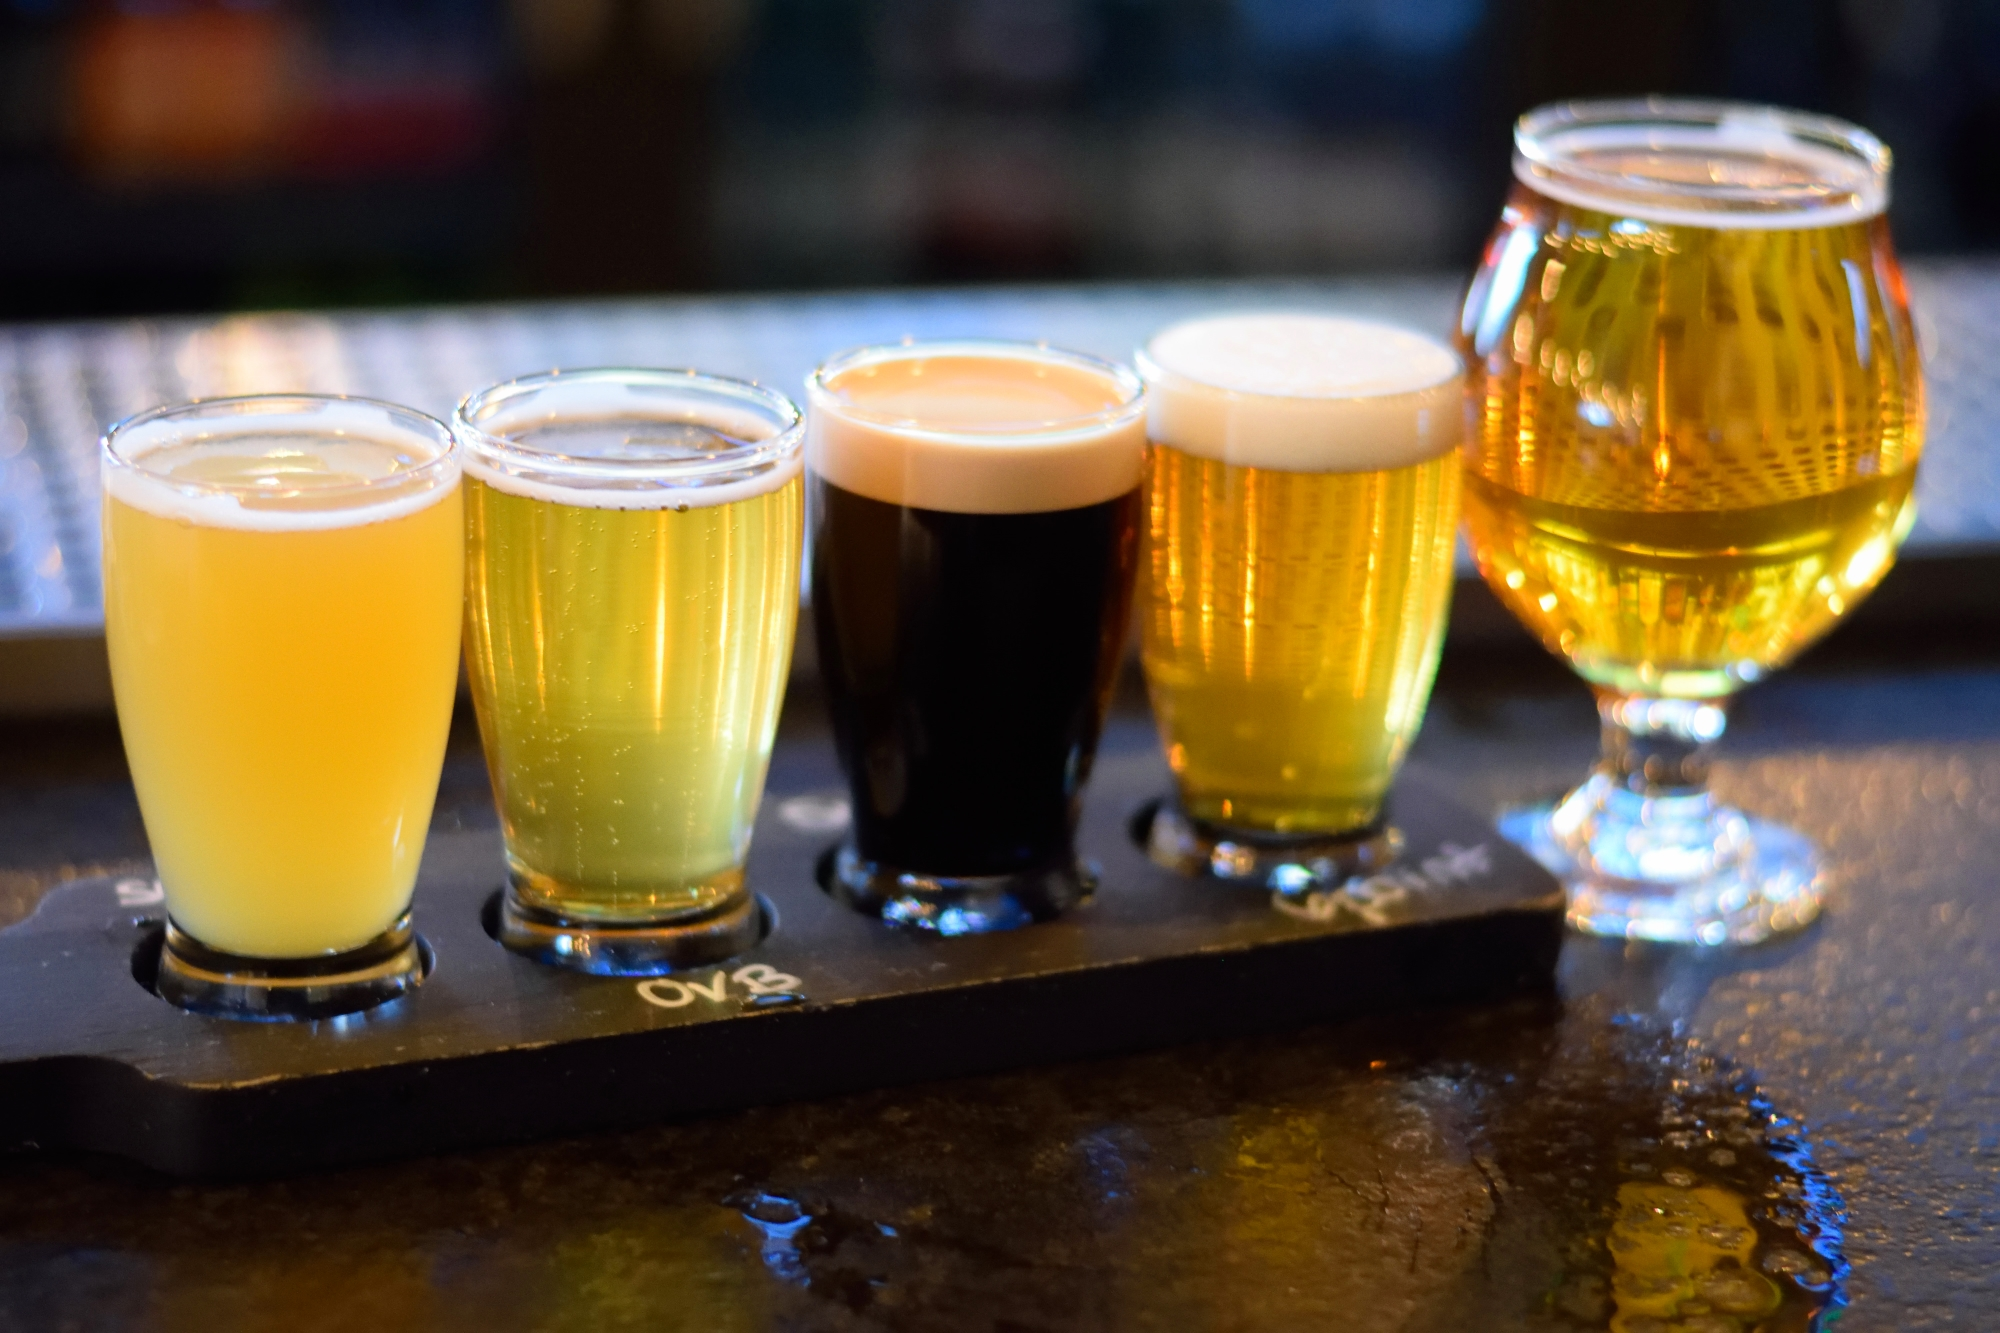 Whenever a bar does flights... I'm on board.